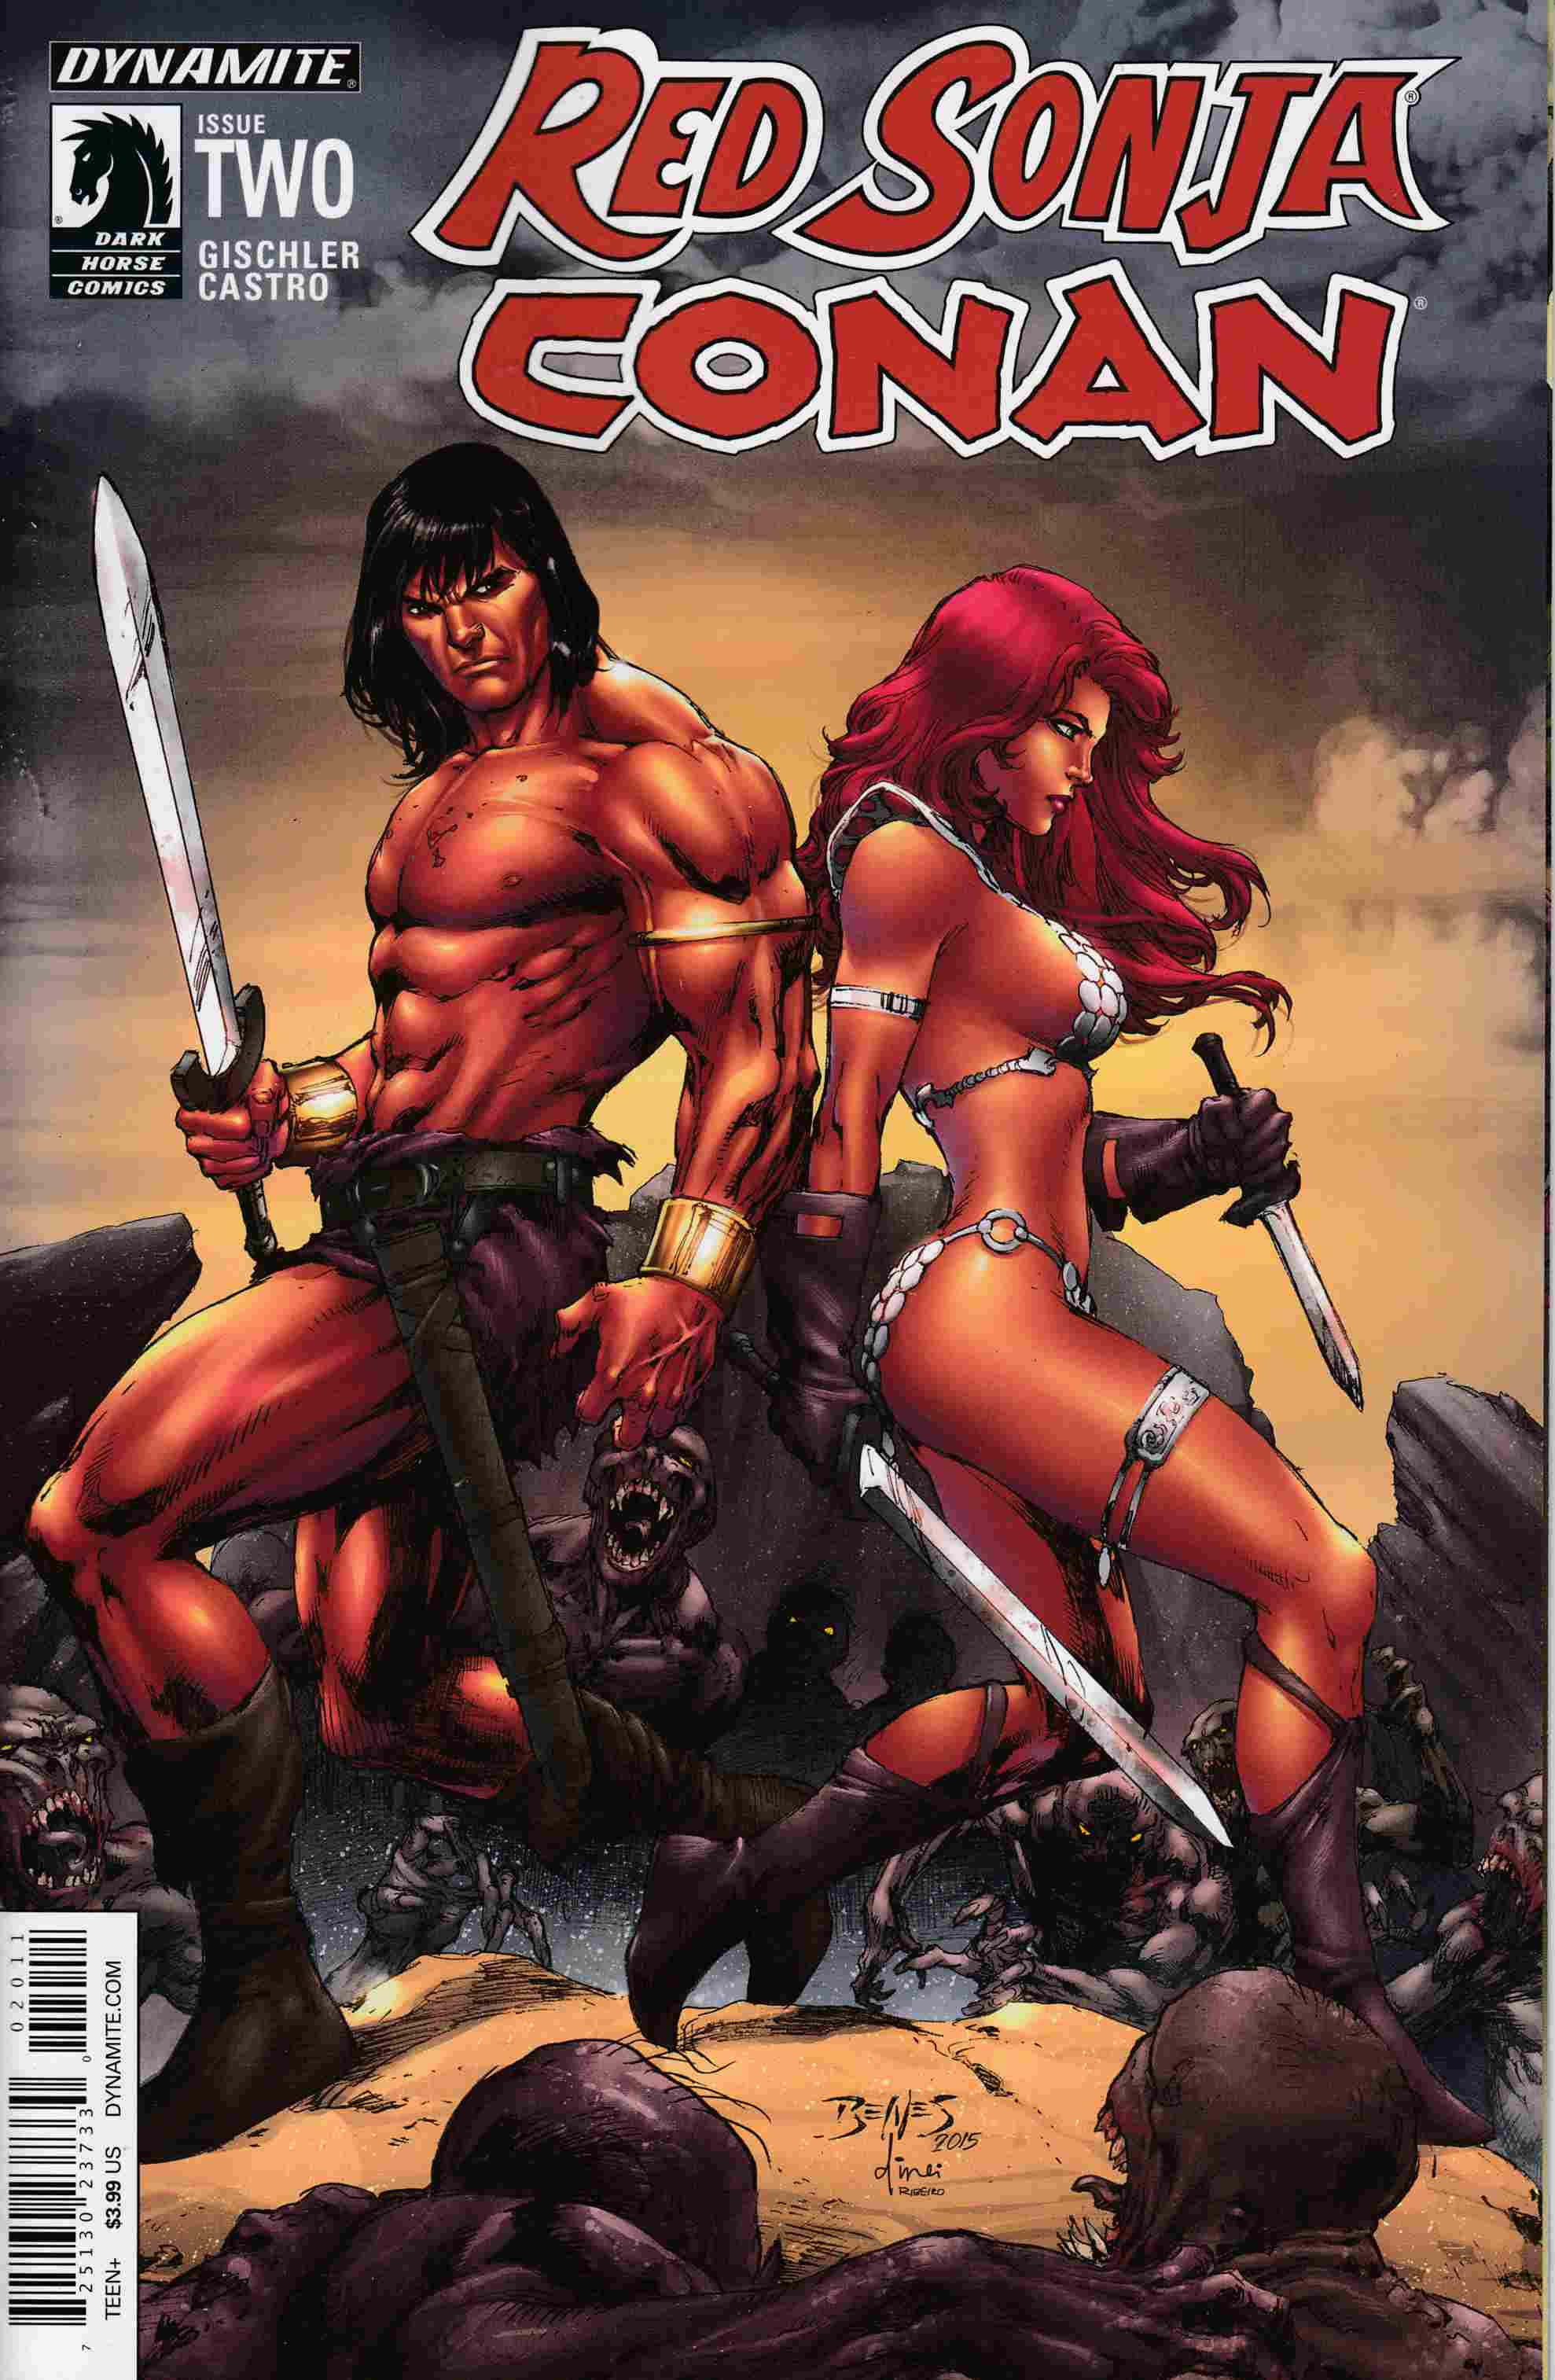 Red Sonja Conan #2 Cover A- Benes [Dynamite Comic]